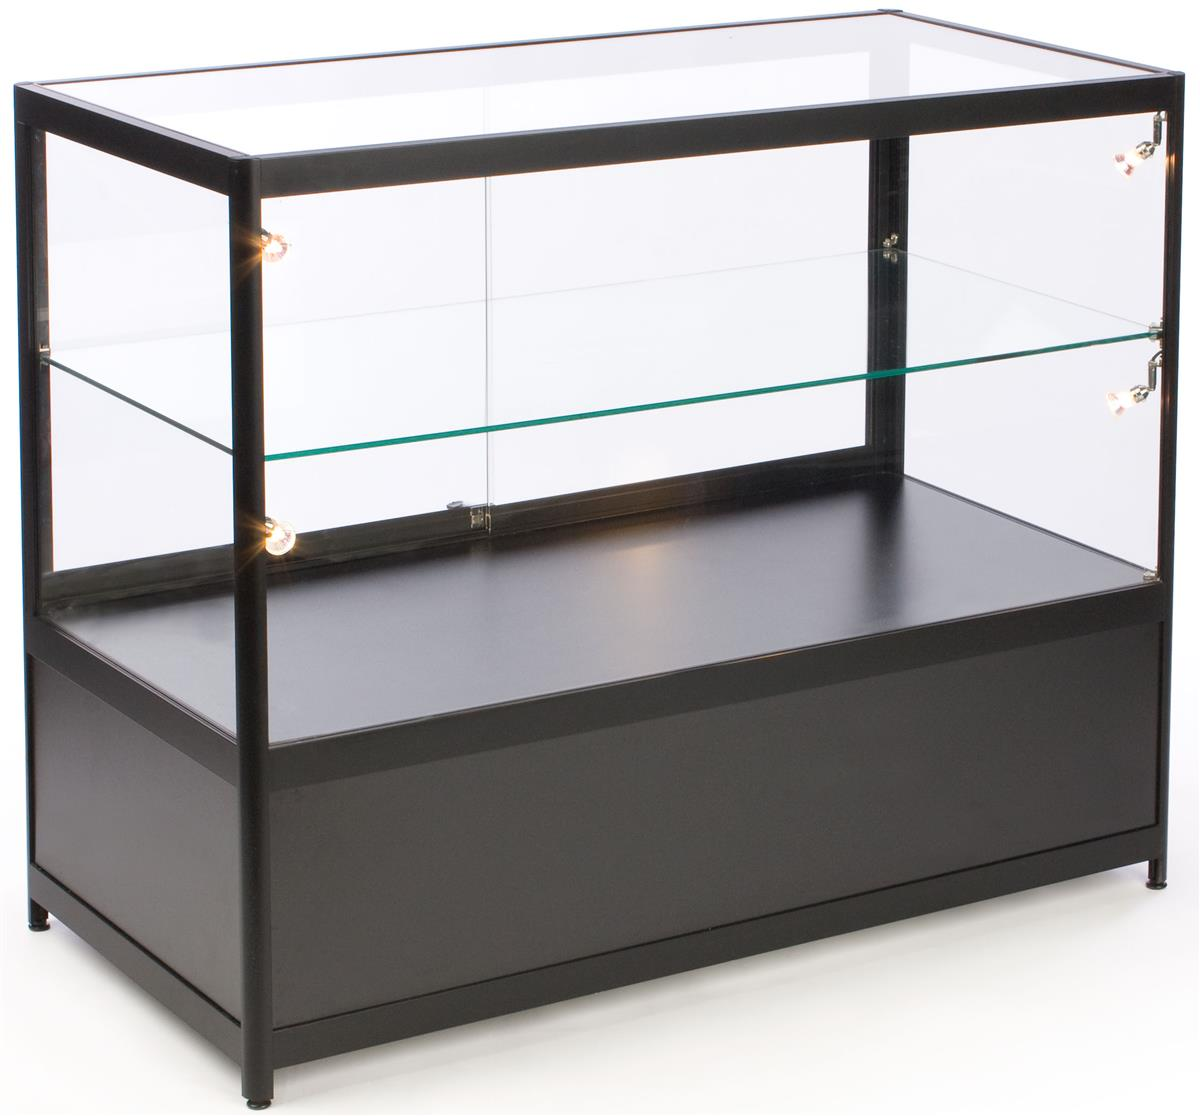 #377B75 Glass Counter Locking Storage Base W/ Black Lights with 1200x1116 px of Most Effective Glass Display Cases Amazon 11161200 wallpaper @ avoidforclosure.info